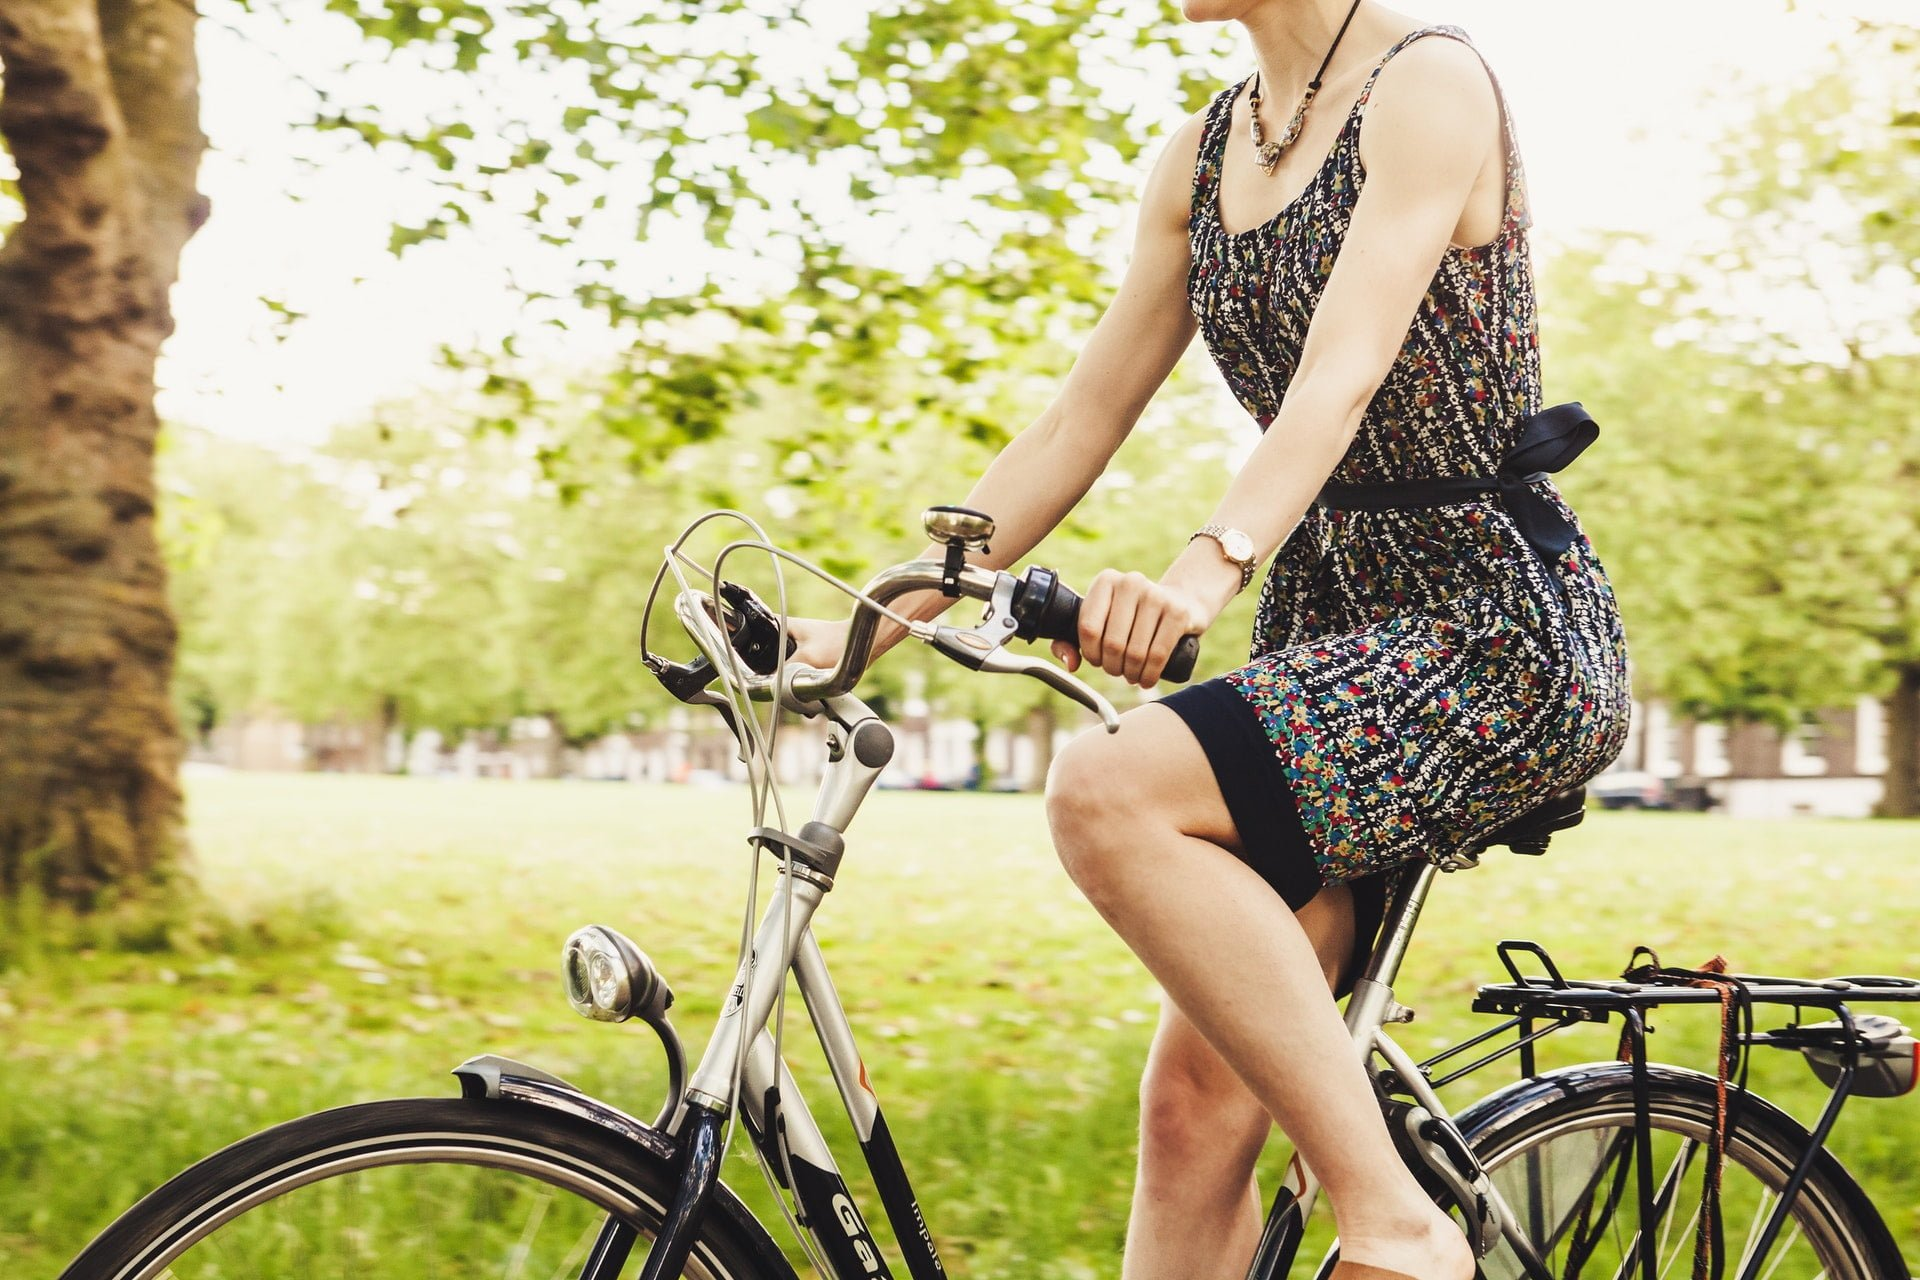 person wearing black and gray sleeveless dress riding a step through bicycle 1